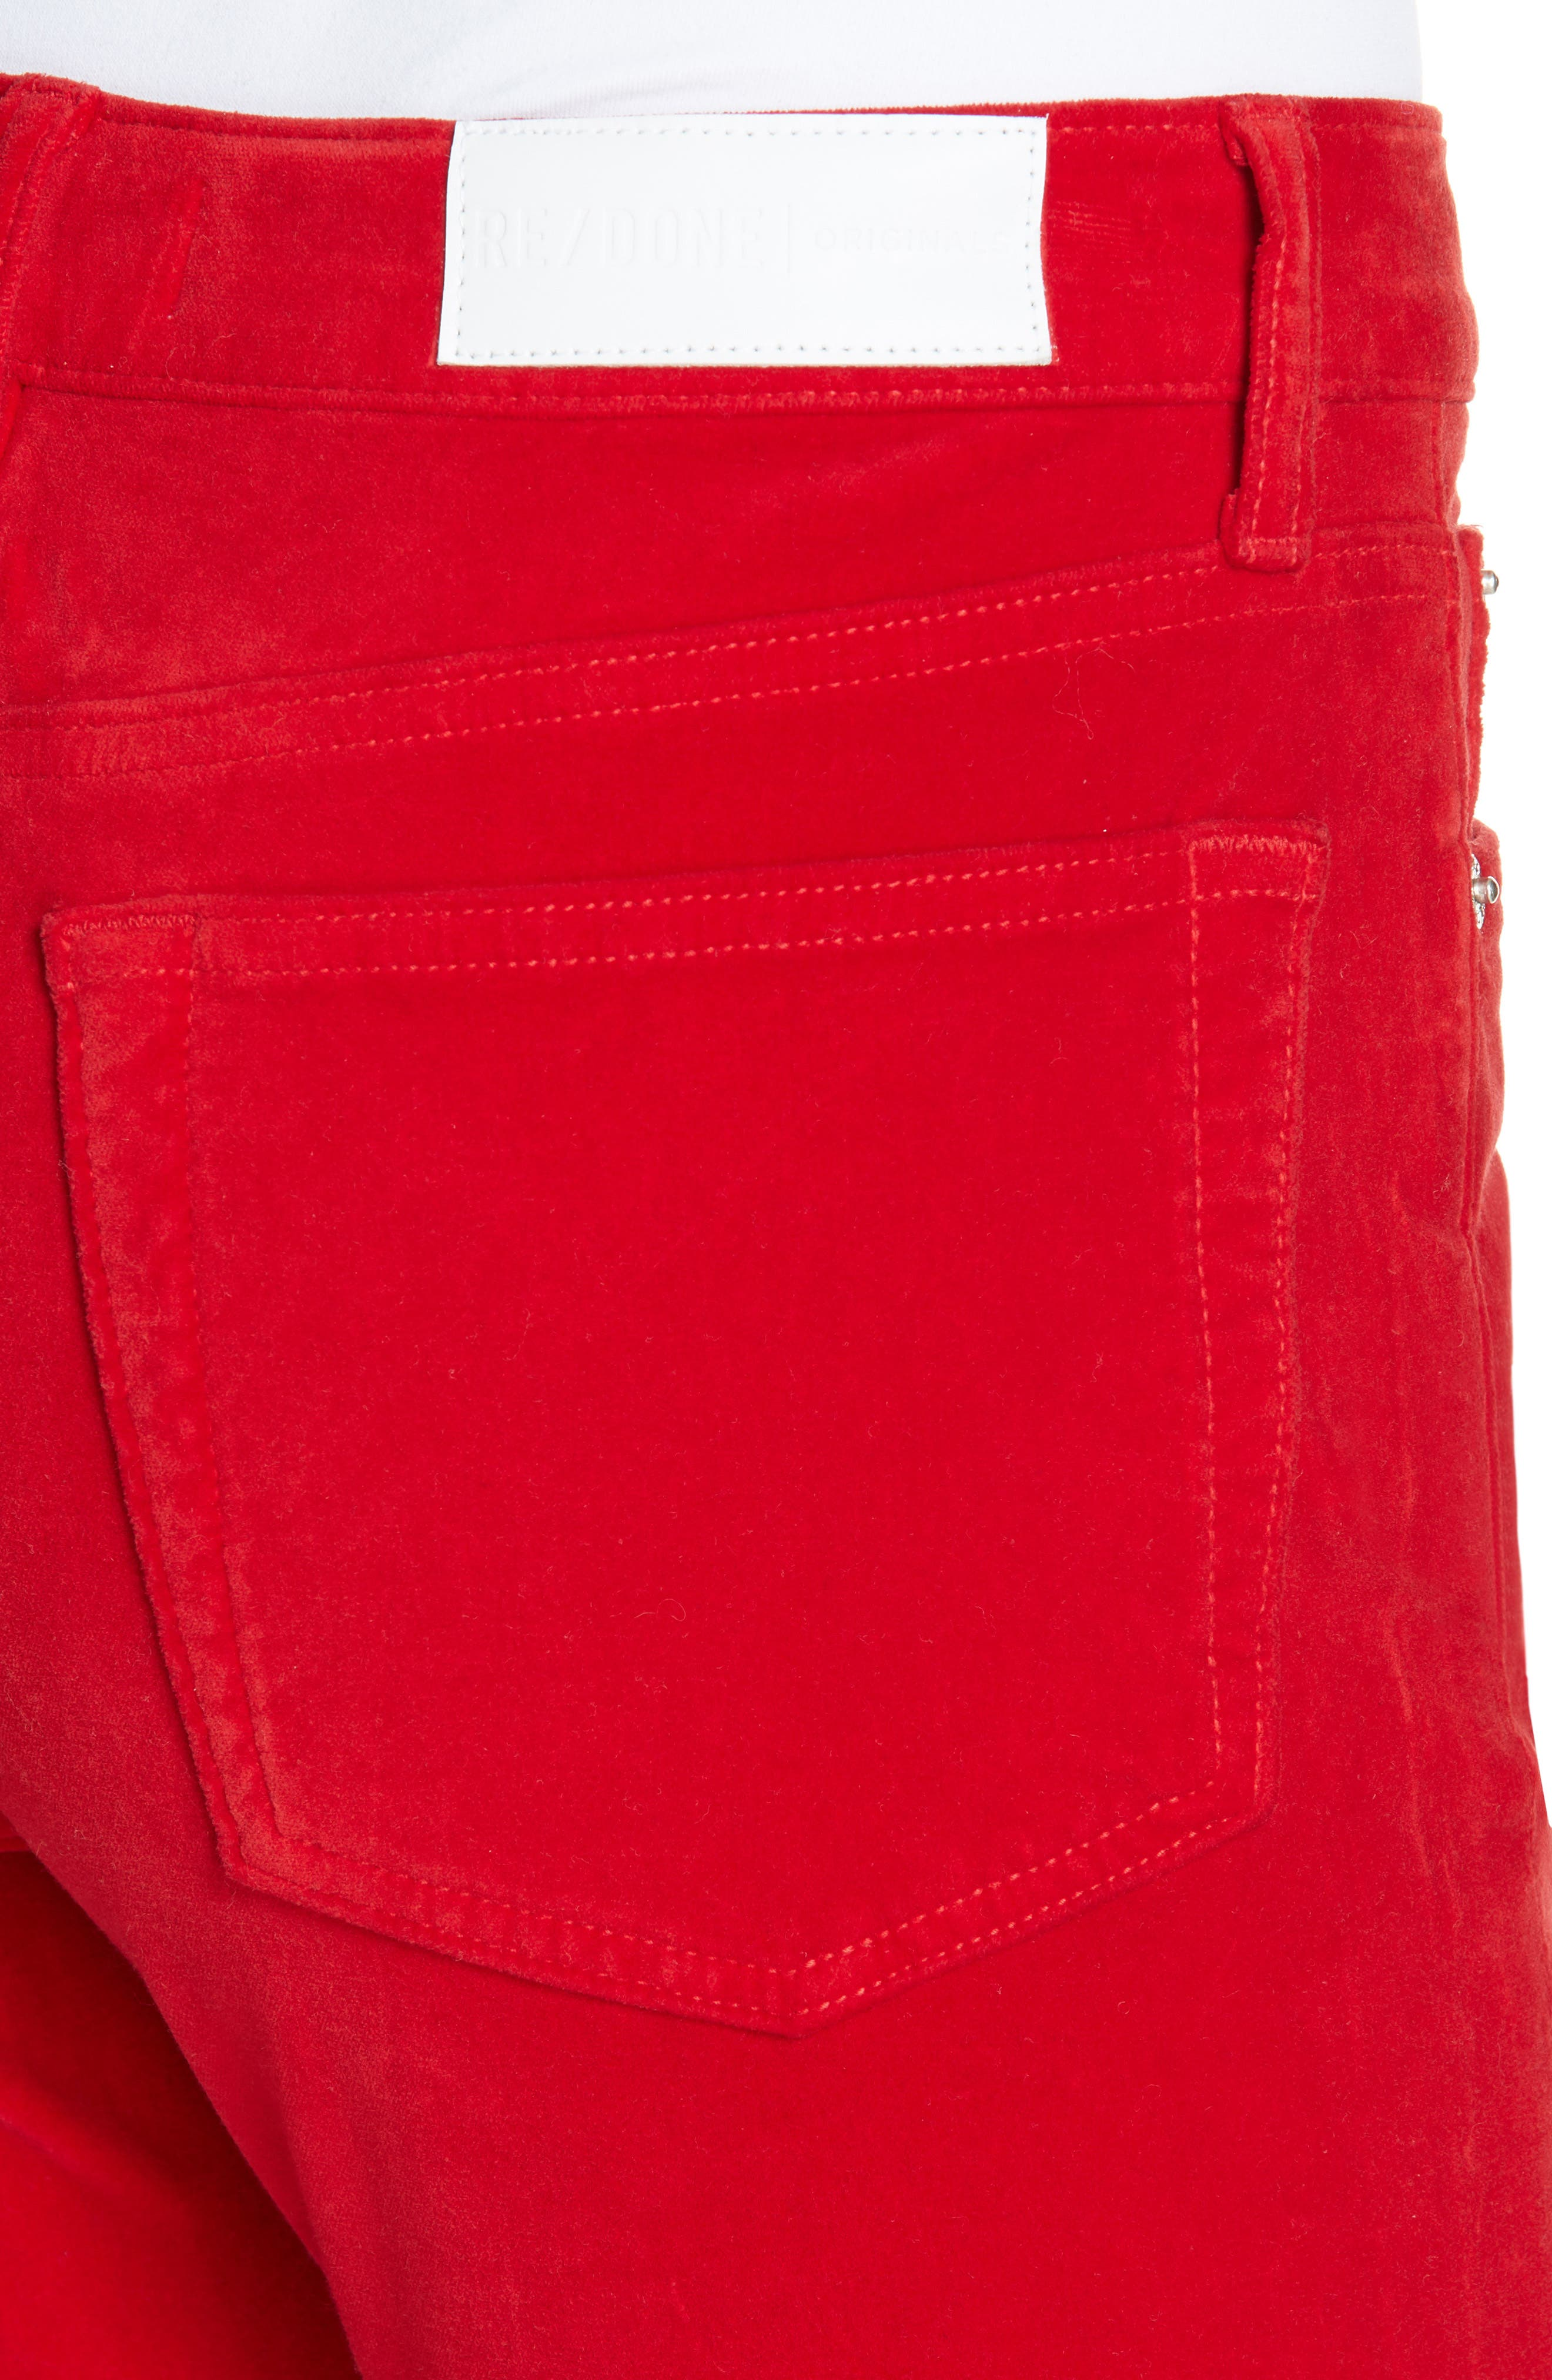 Velvet Crop Kick Flare Jeans,                             Alternate thumbnail 4, color,                             RED